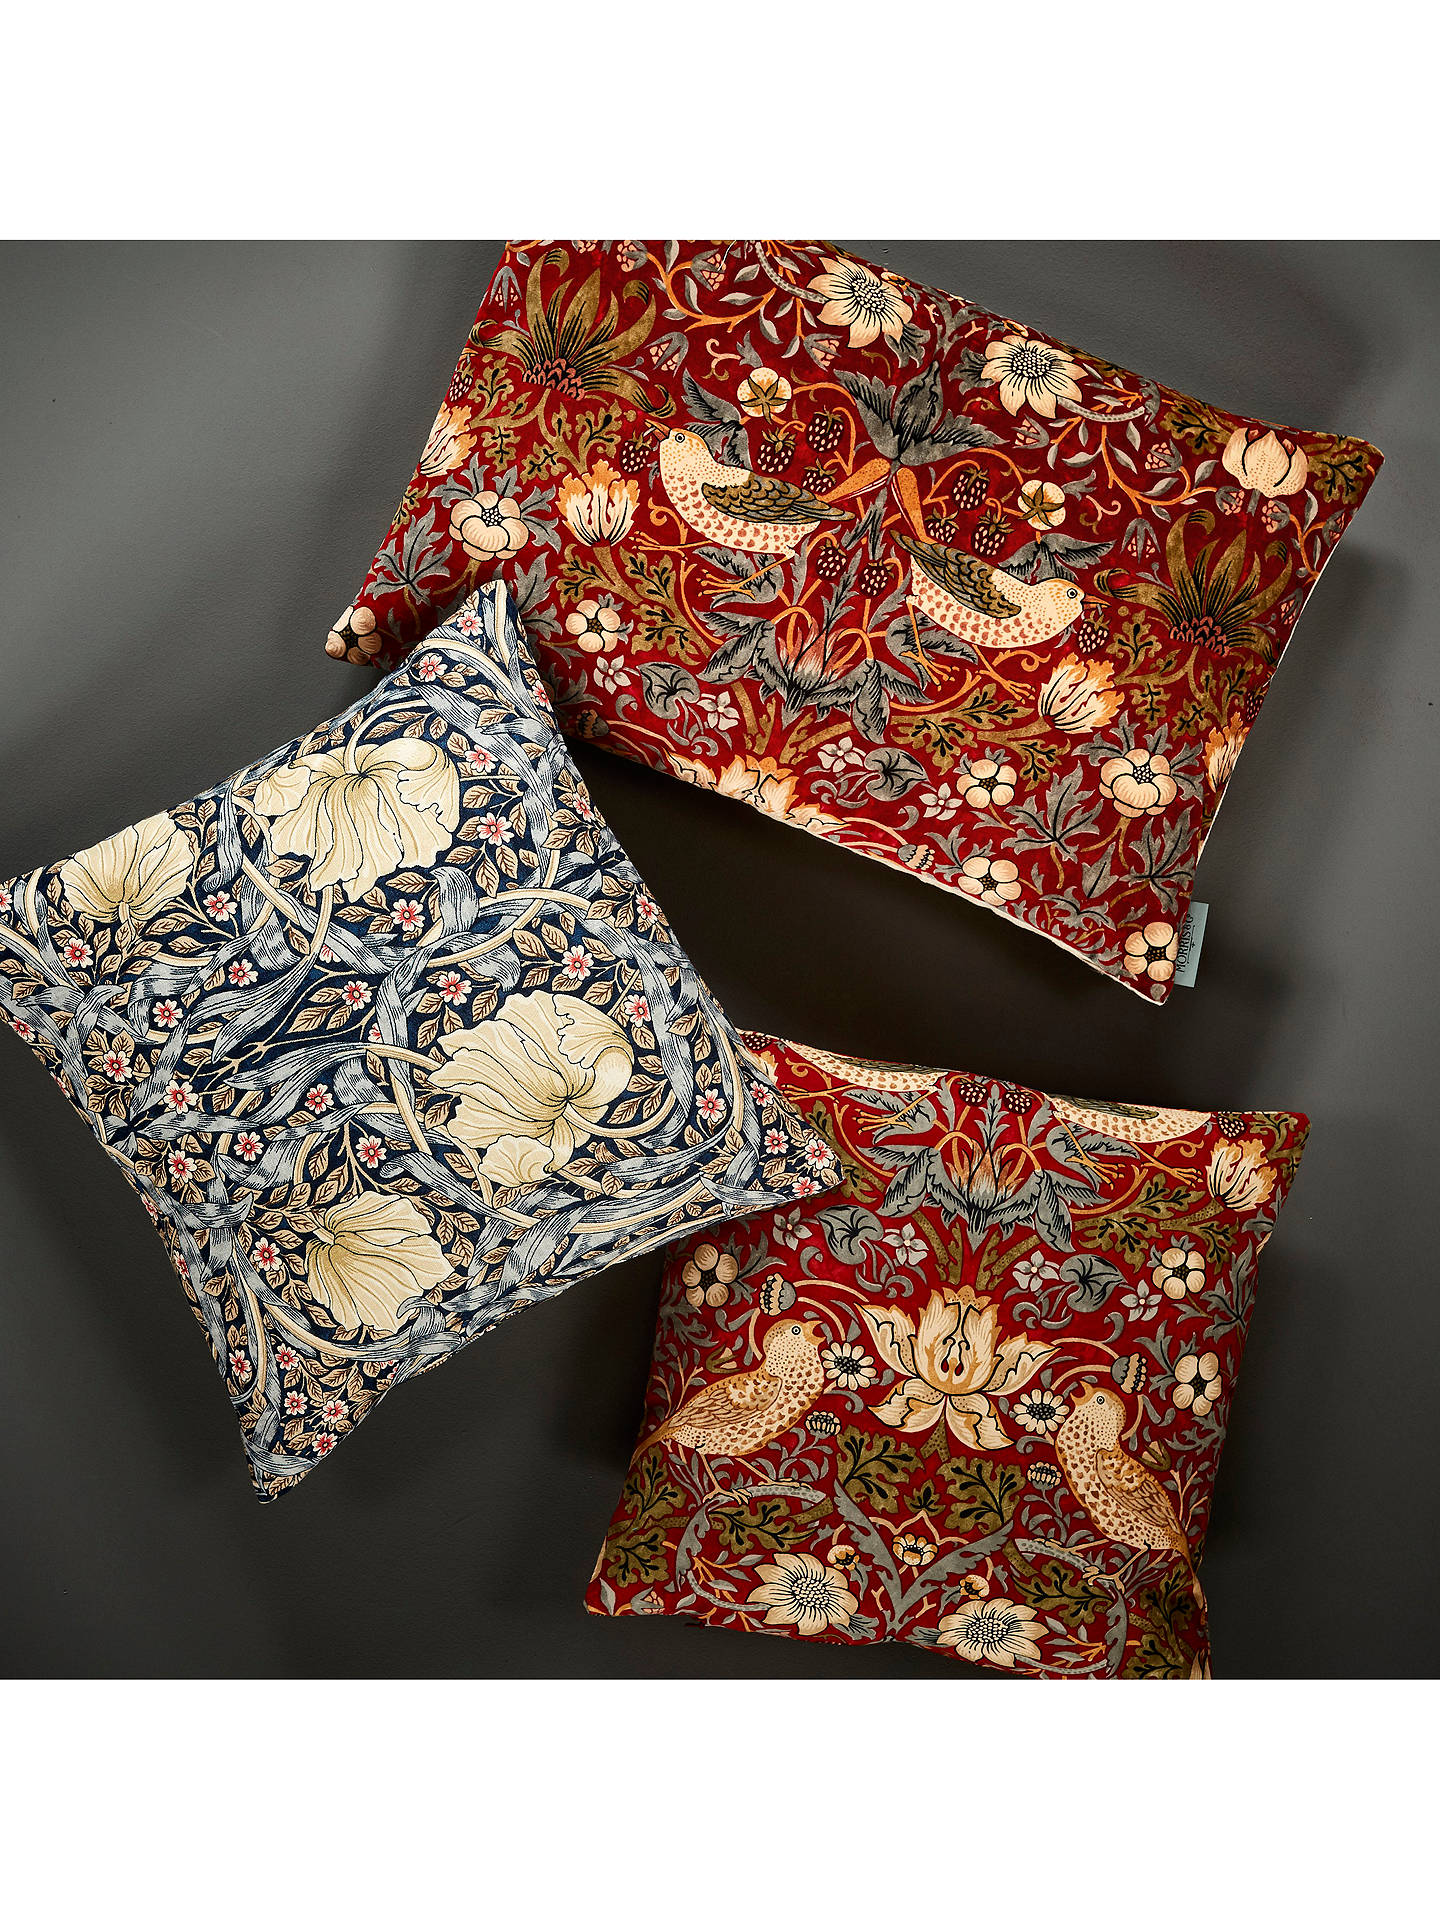 Buy Morris & Co. Strawberry Thief Cushion, Red Online at johnlewis.com